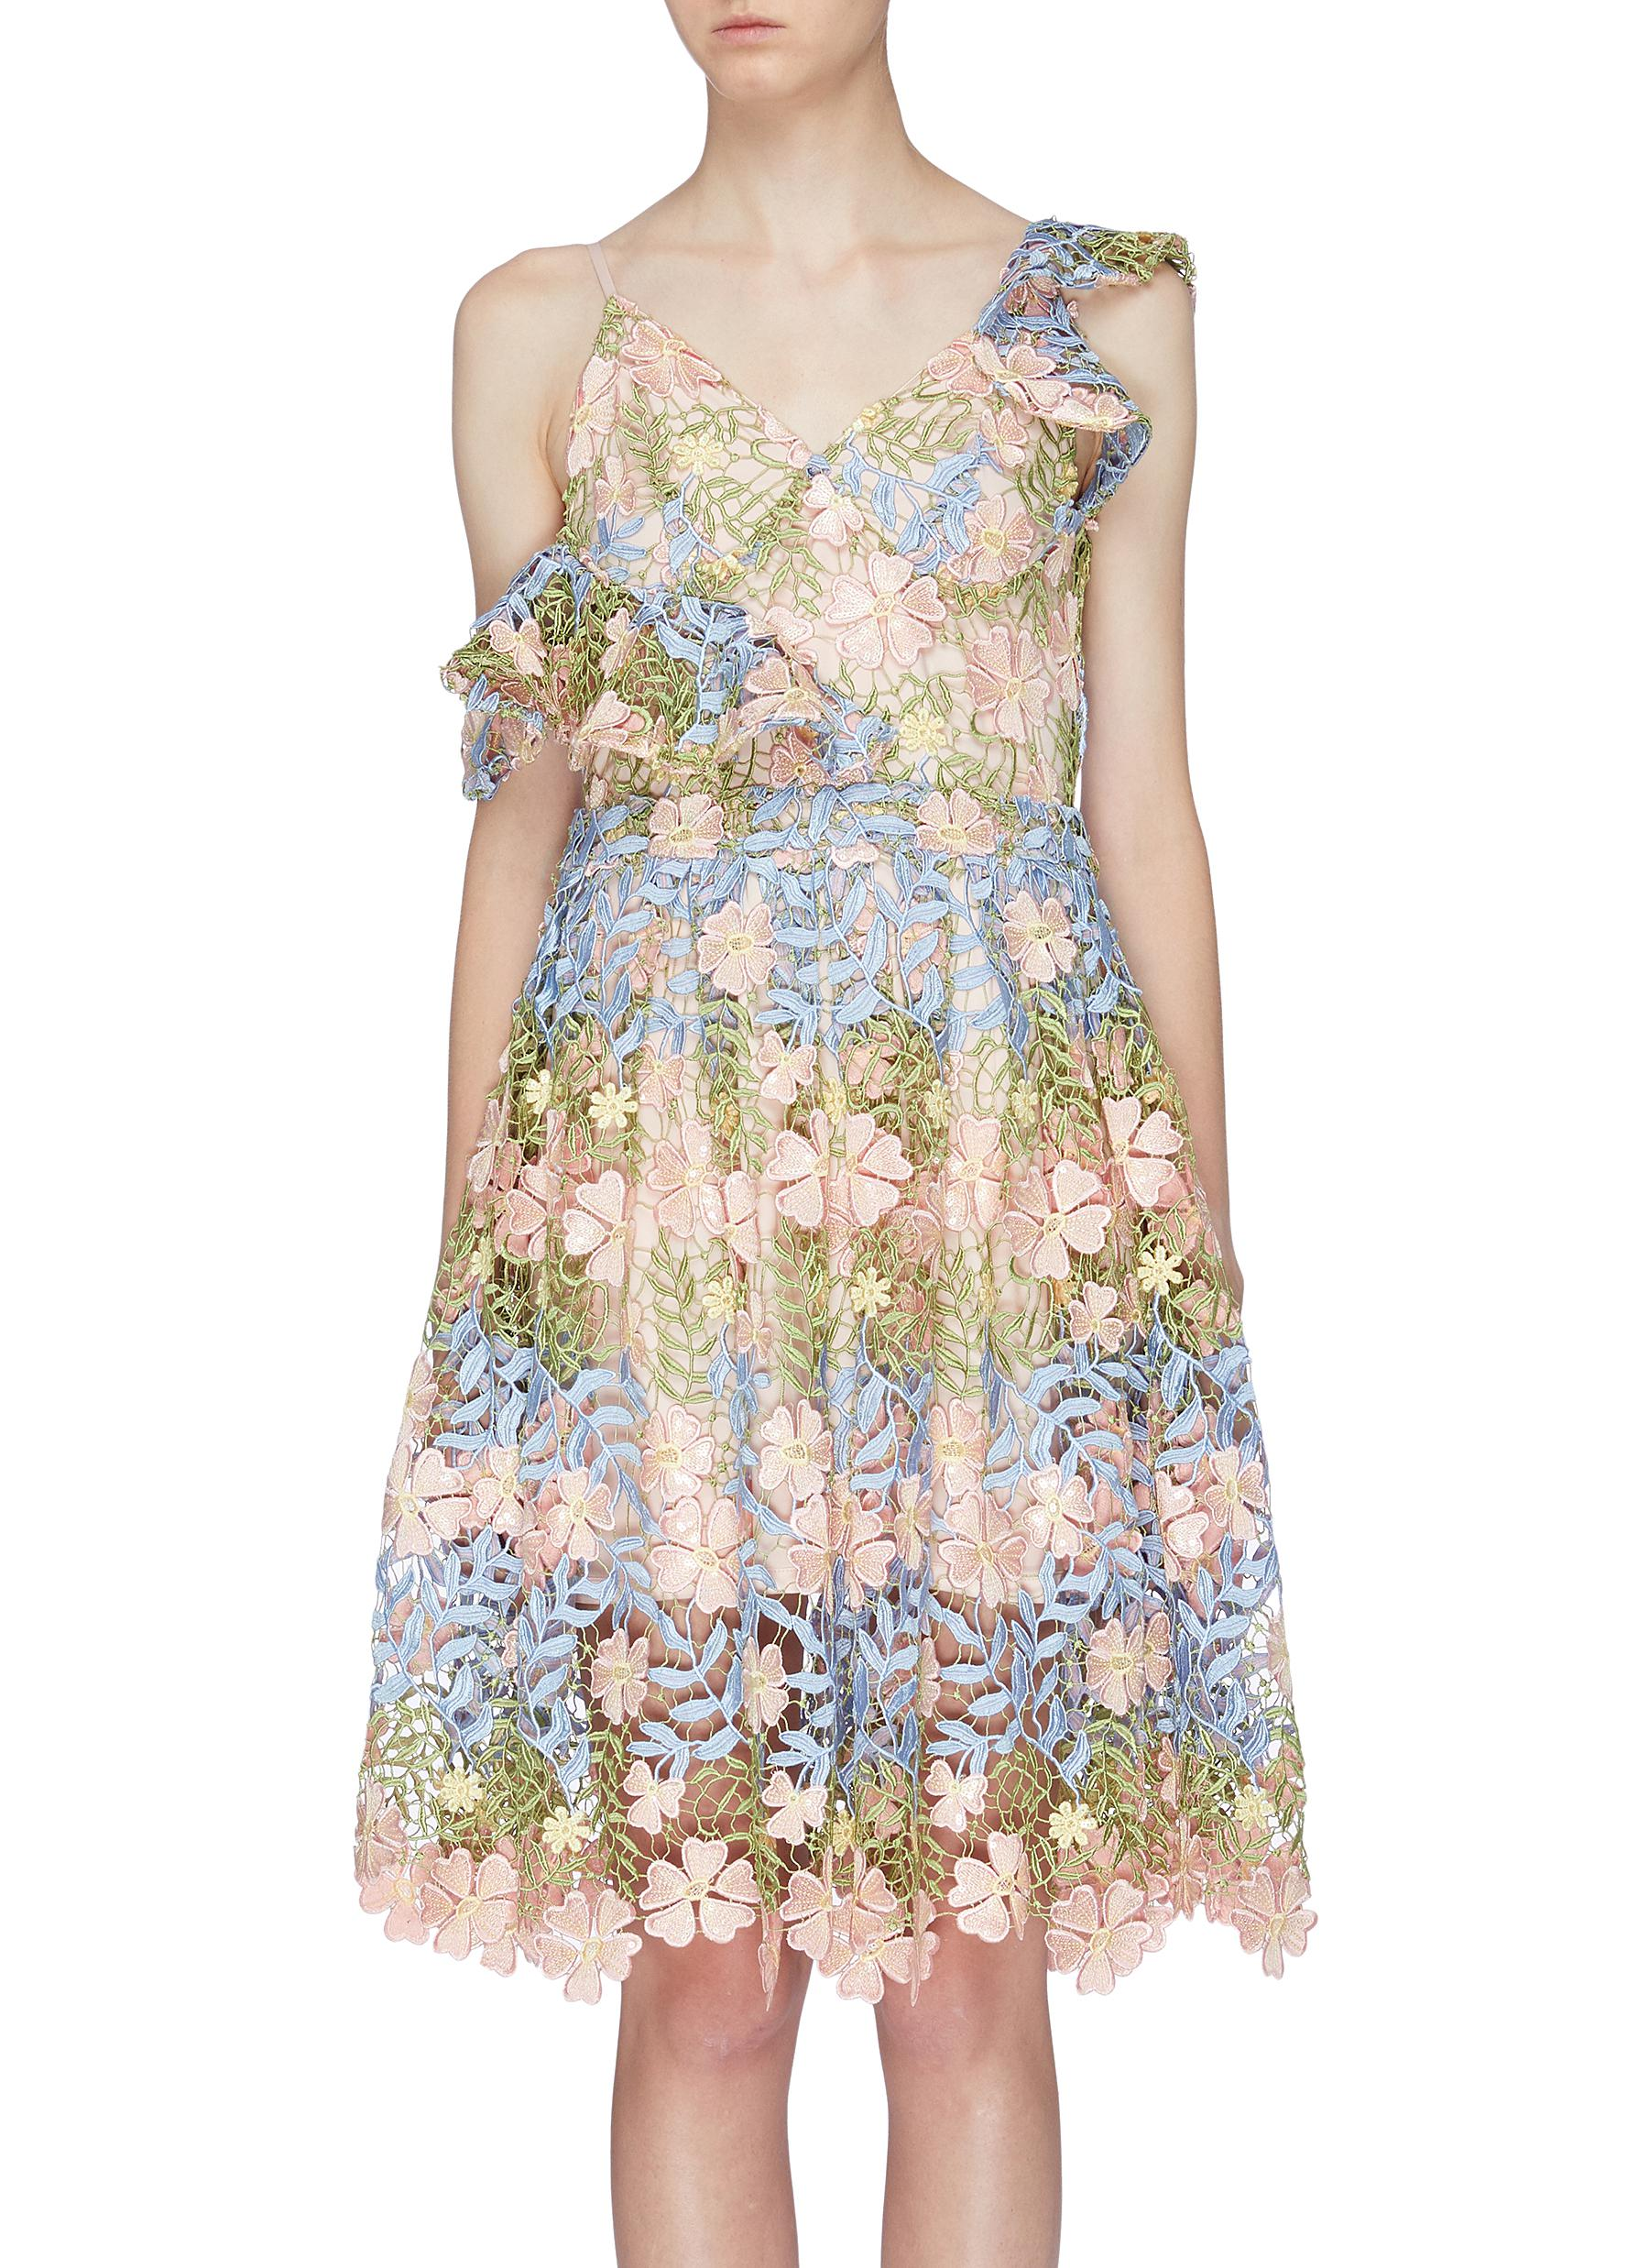 Asymmetric cold shoulder floral embroidered dress by Jonathan Liang